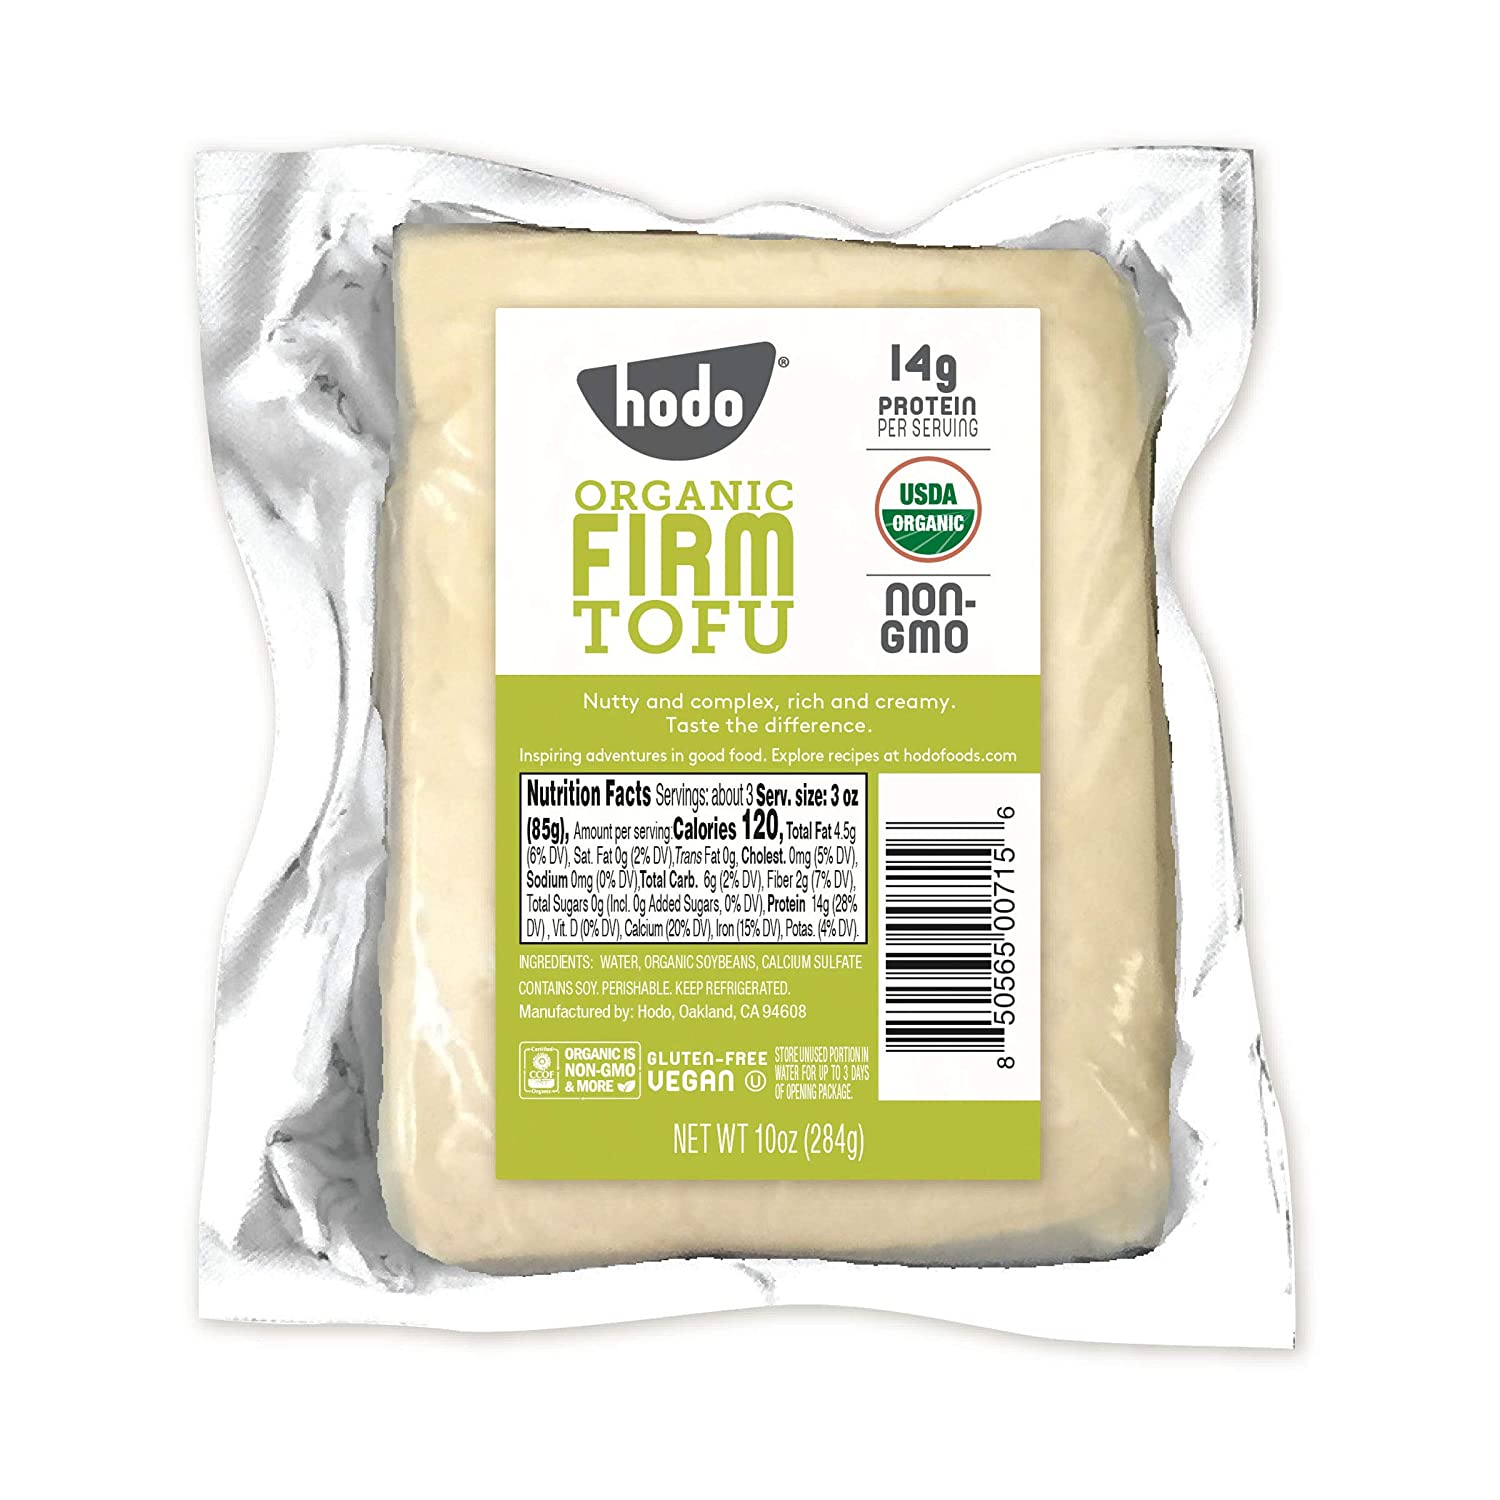 Hodo Soy Beanery Tofu Organic Firm Gorgeous Max 73% OFF Ounce 10